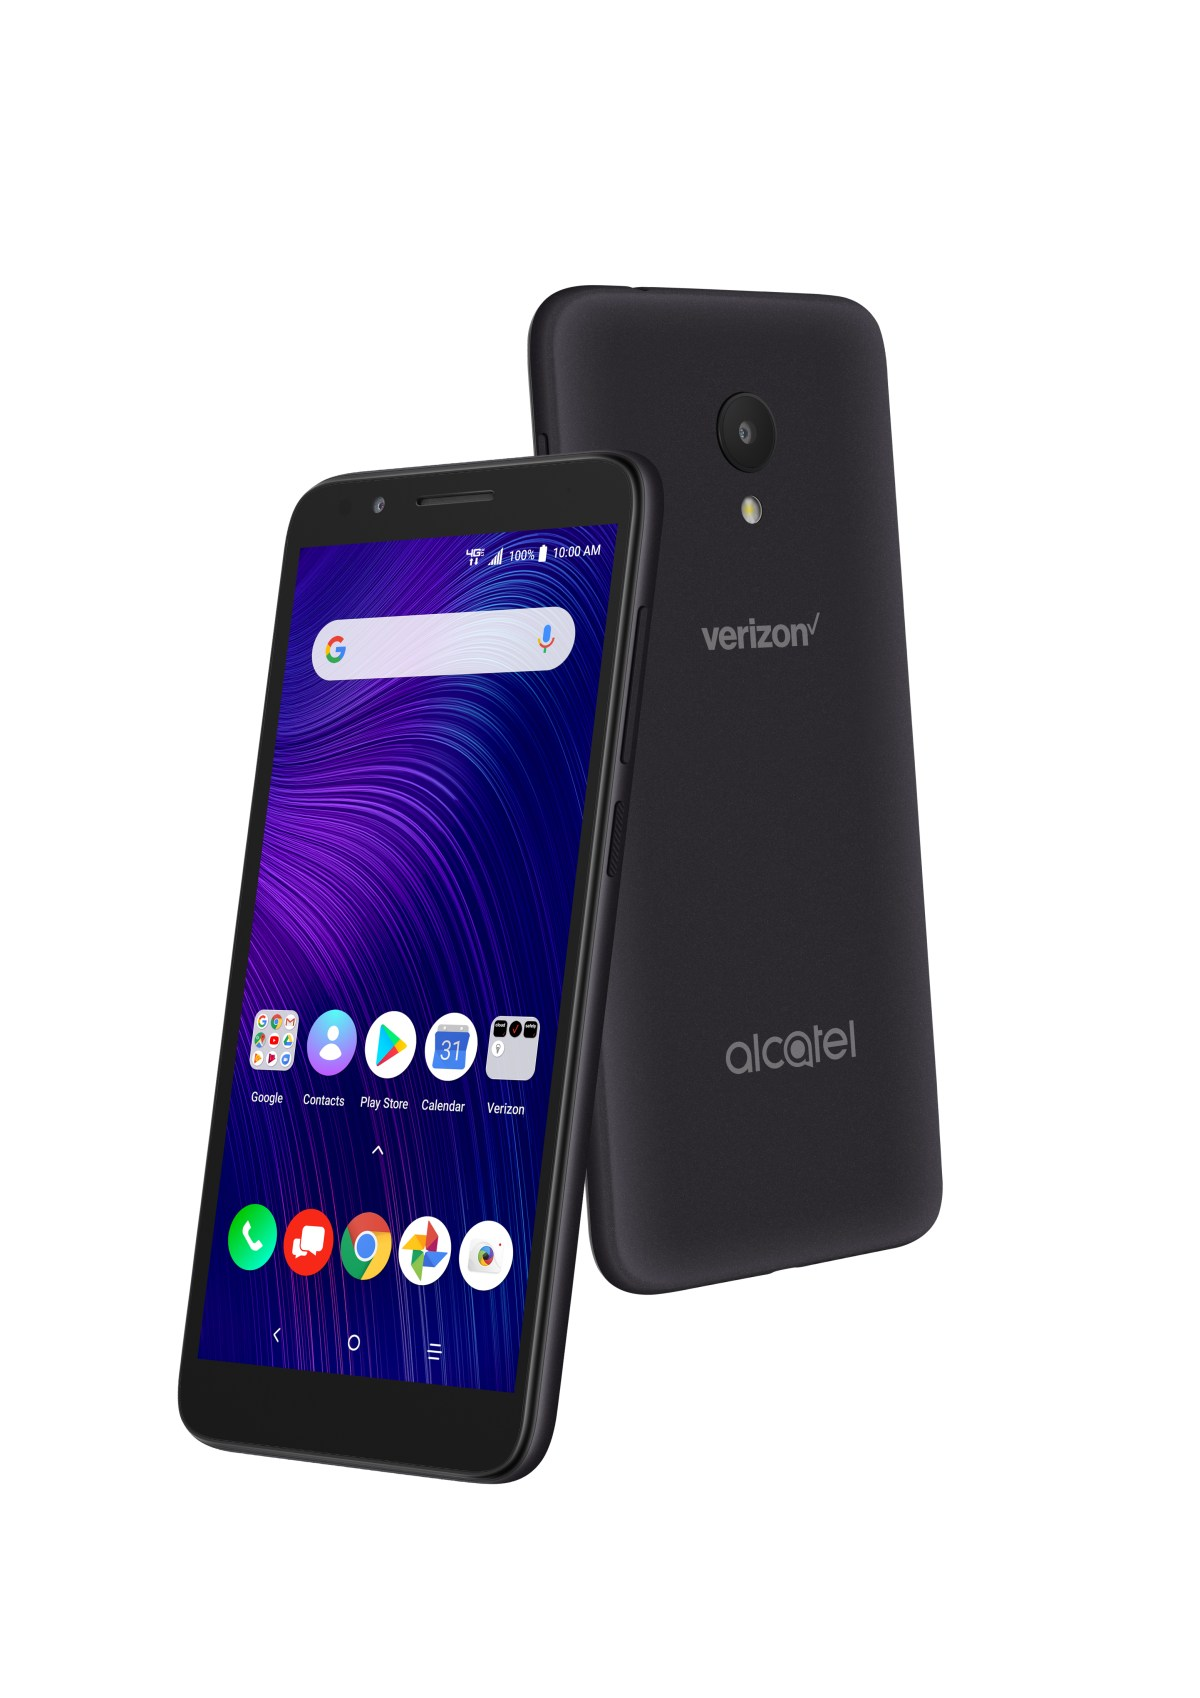 Alcatel AVALON V on Verizon Wireless